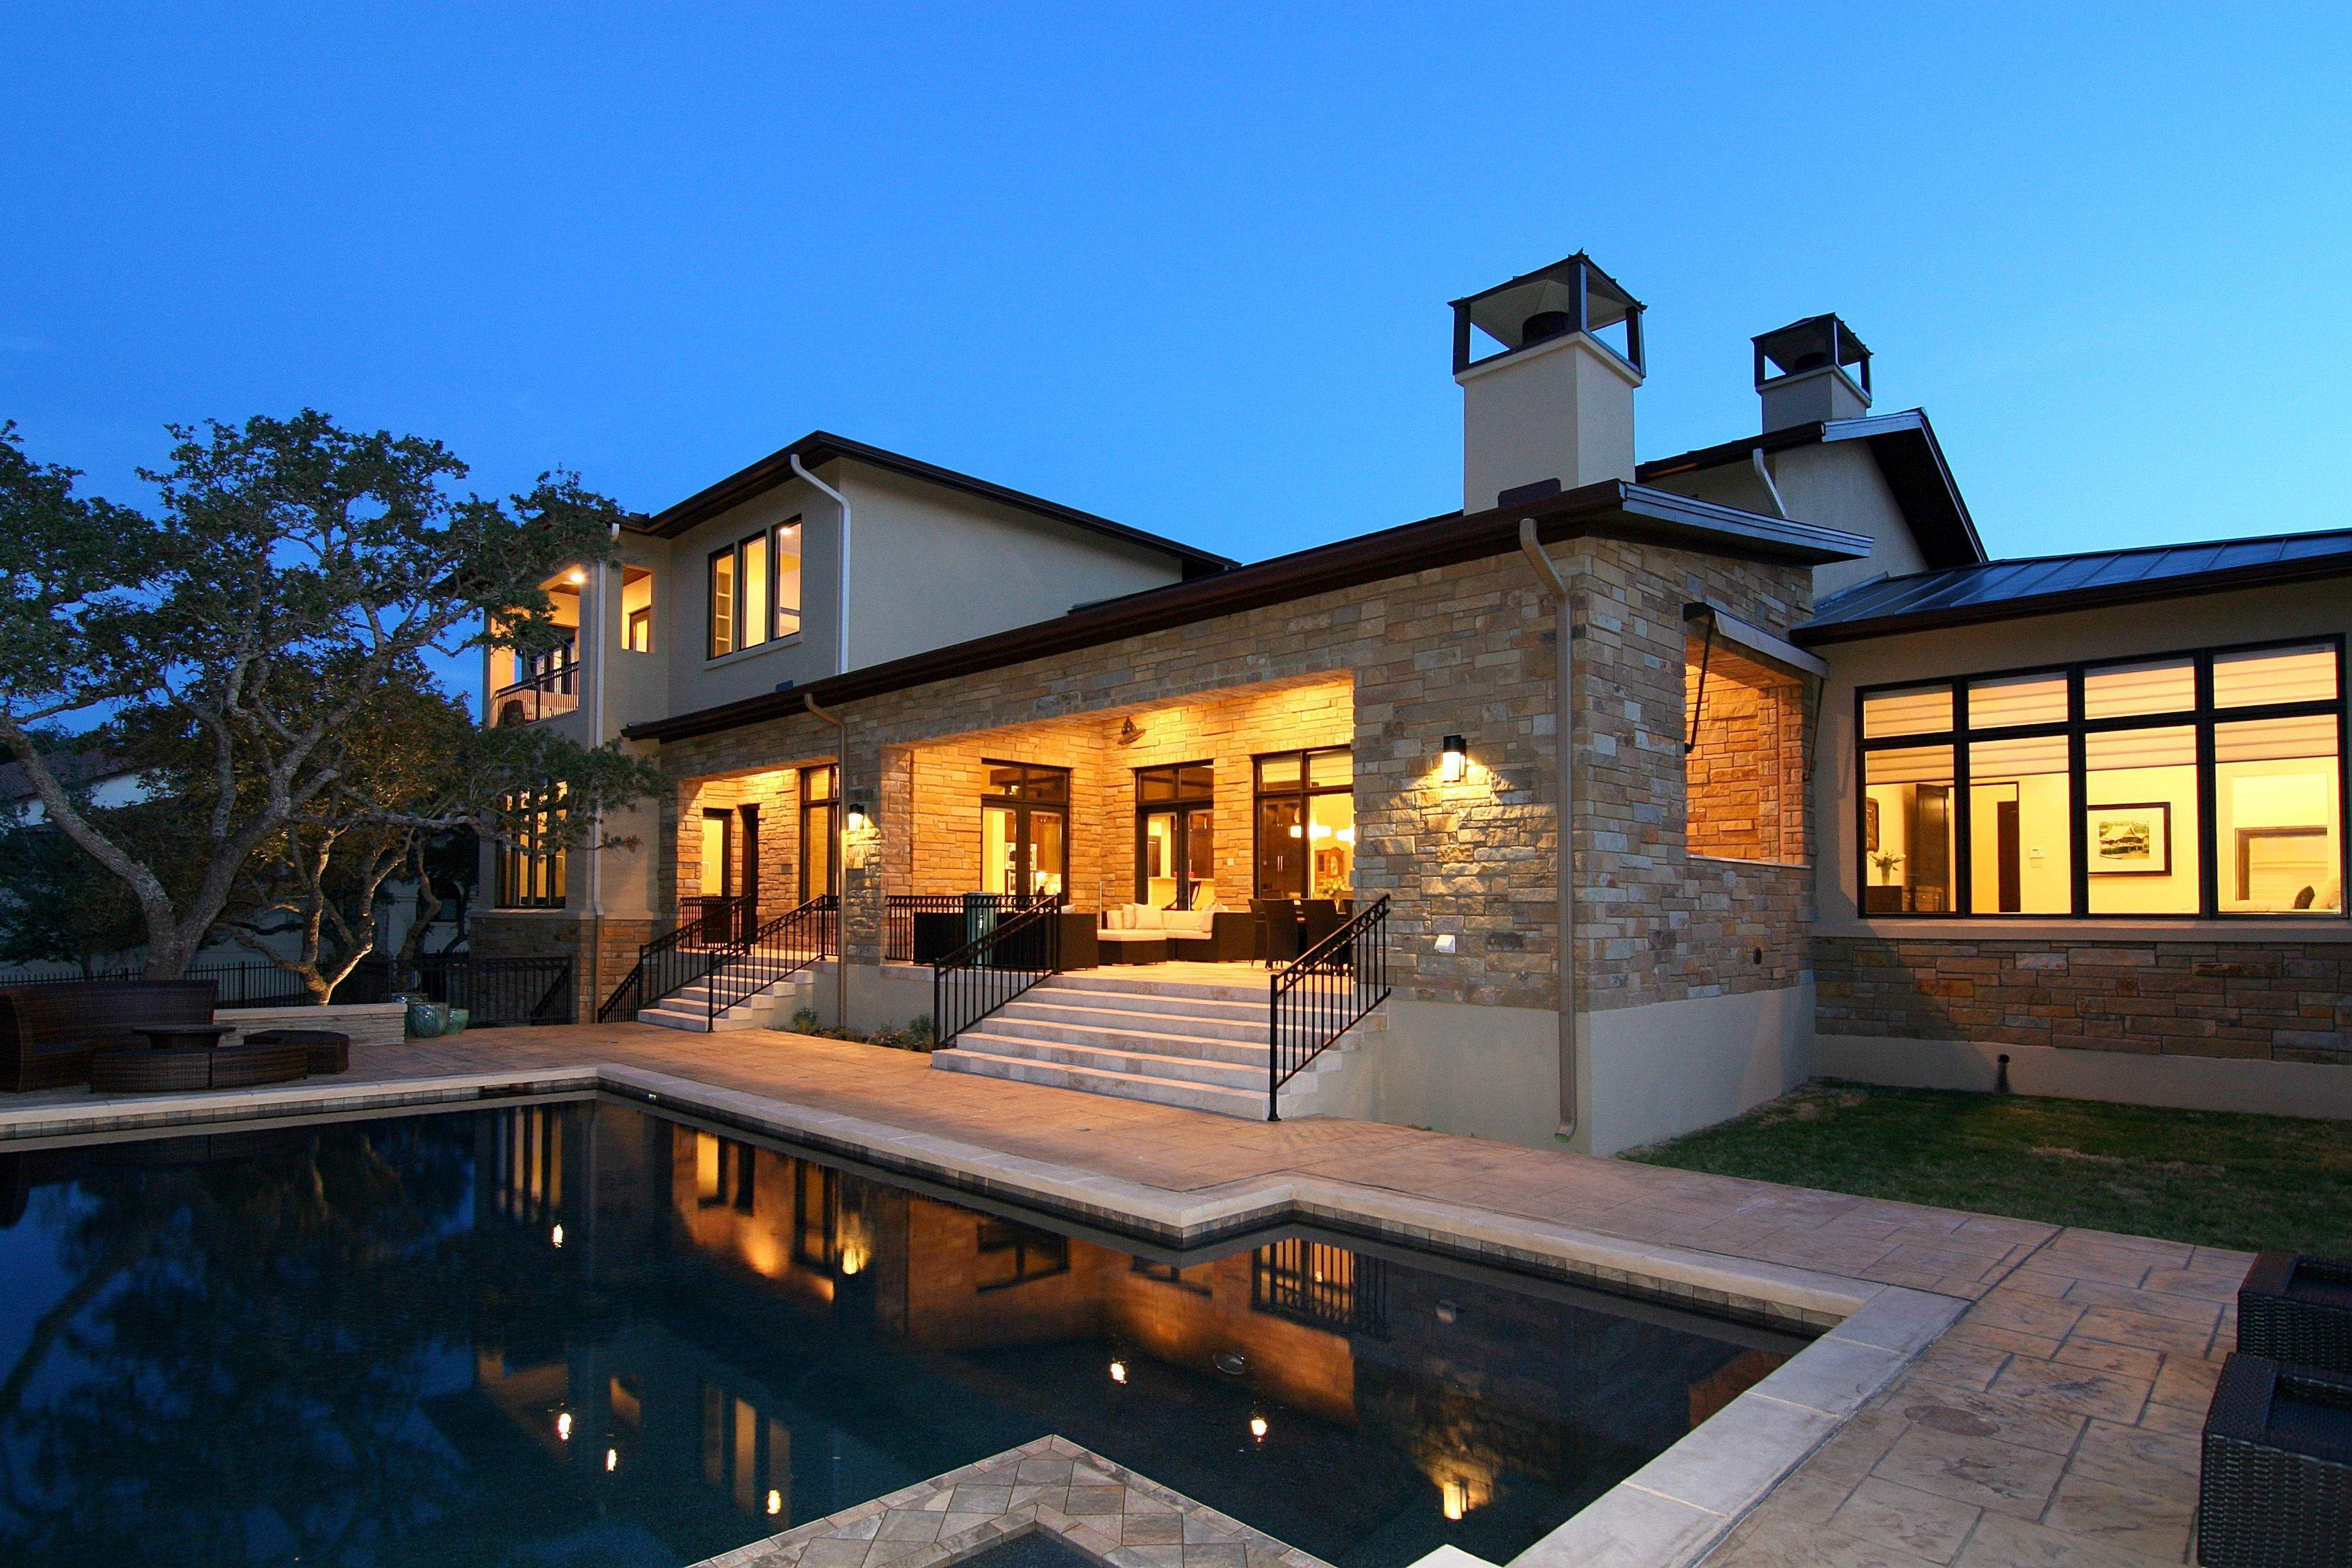 Extravagant luxury home with modern style for everlasting idea